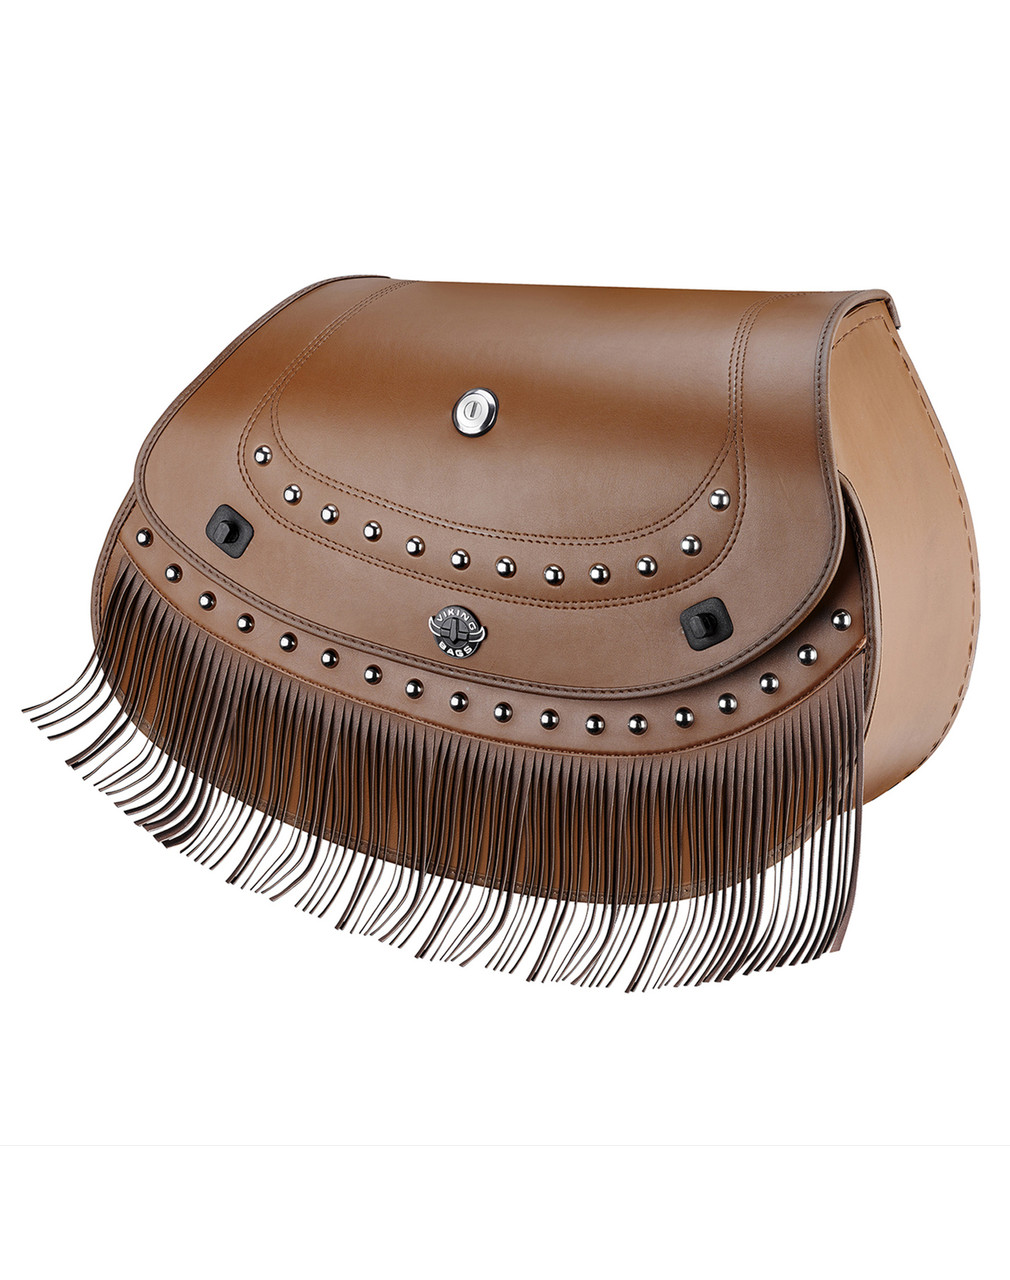 Indian Chief Classic Viking Indian Specific Brown Leather Motorcycle Saddlebags Main Bag View